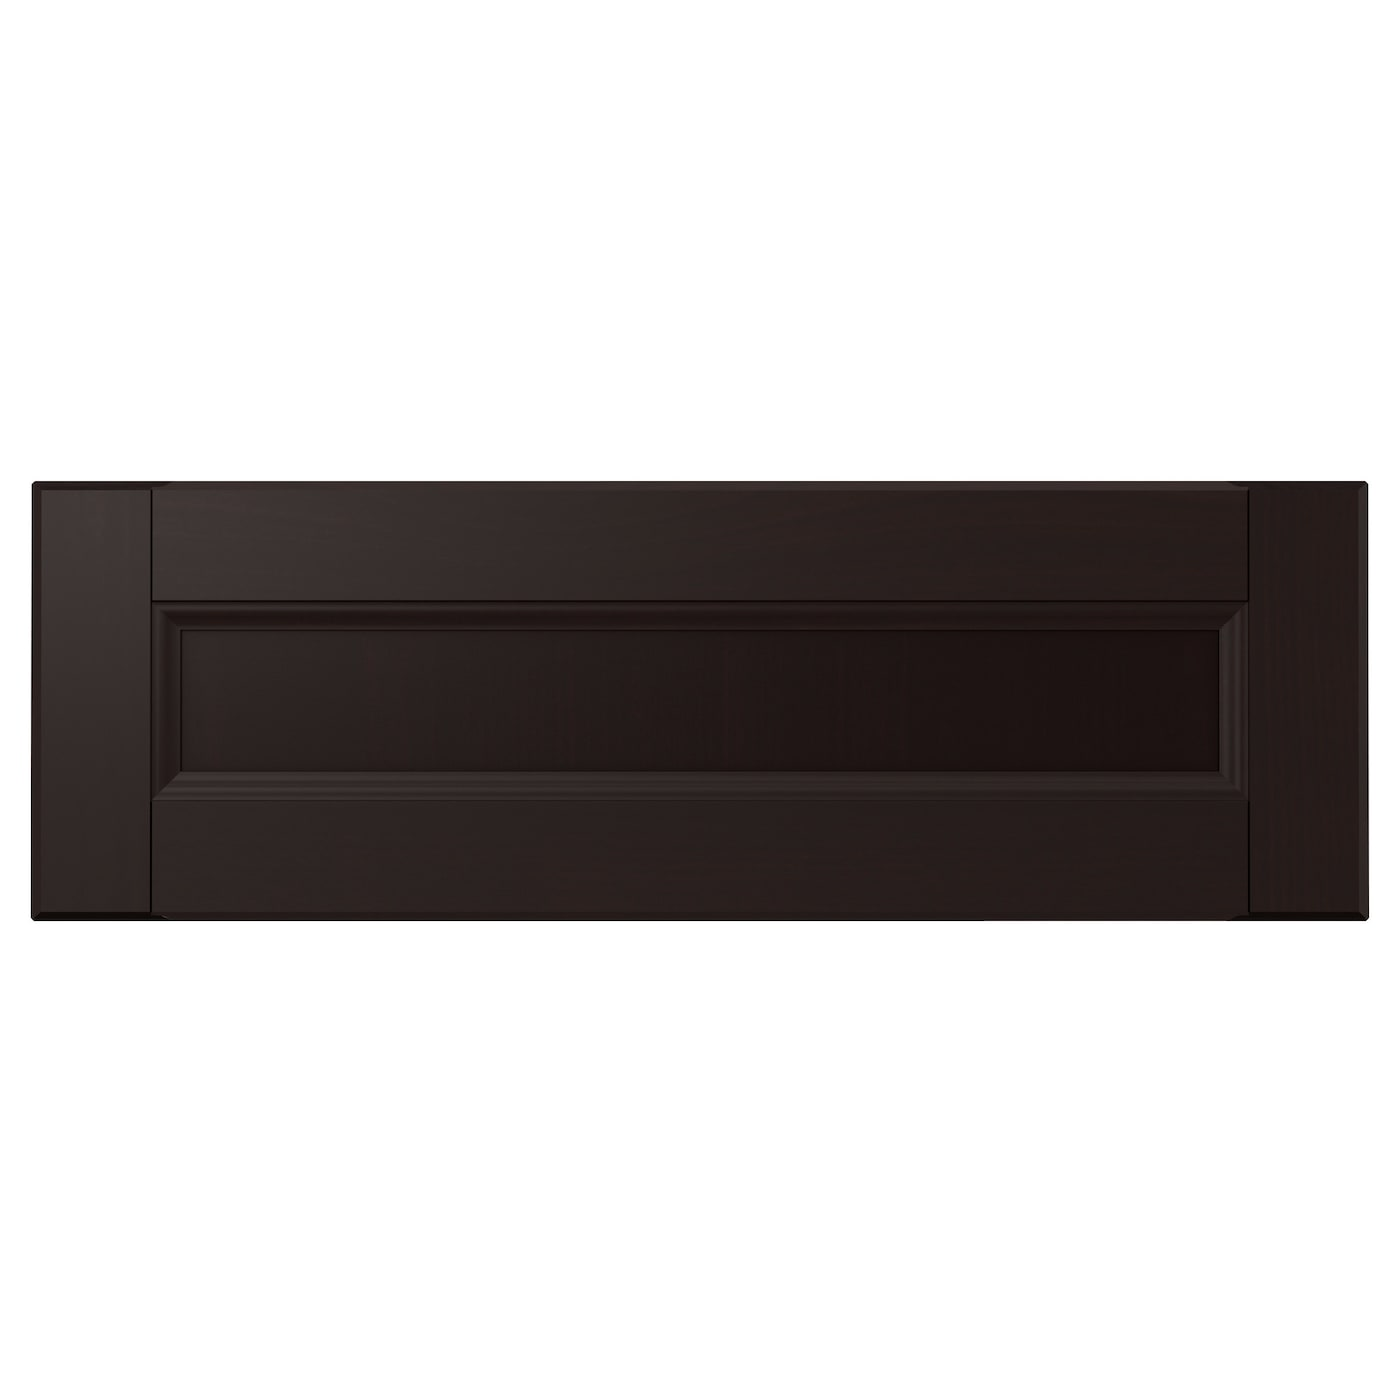 Kitchen Cabinet Door Fronts: LAXARBY Drawer Front Black-brown 60x20 Cm